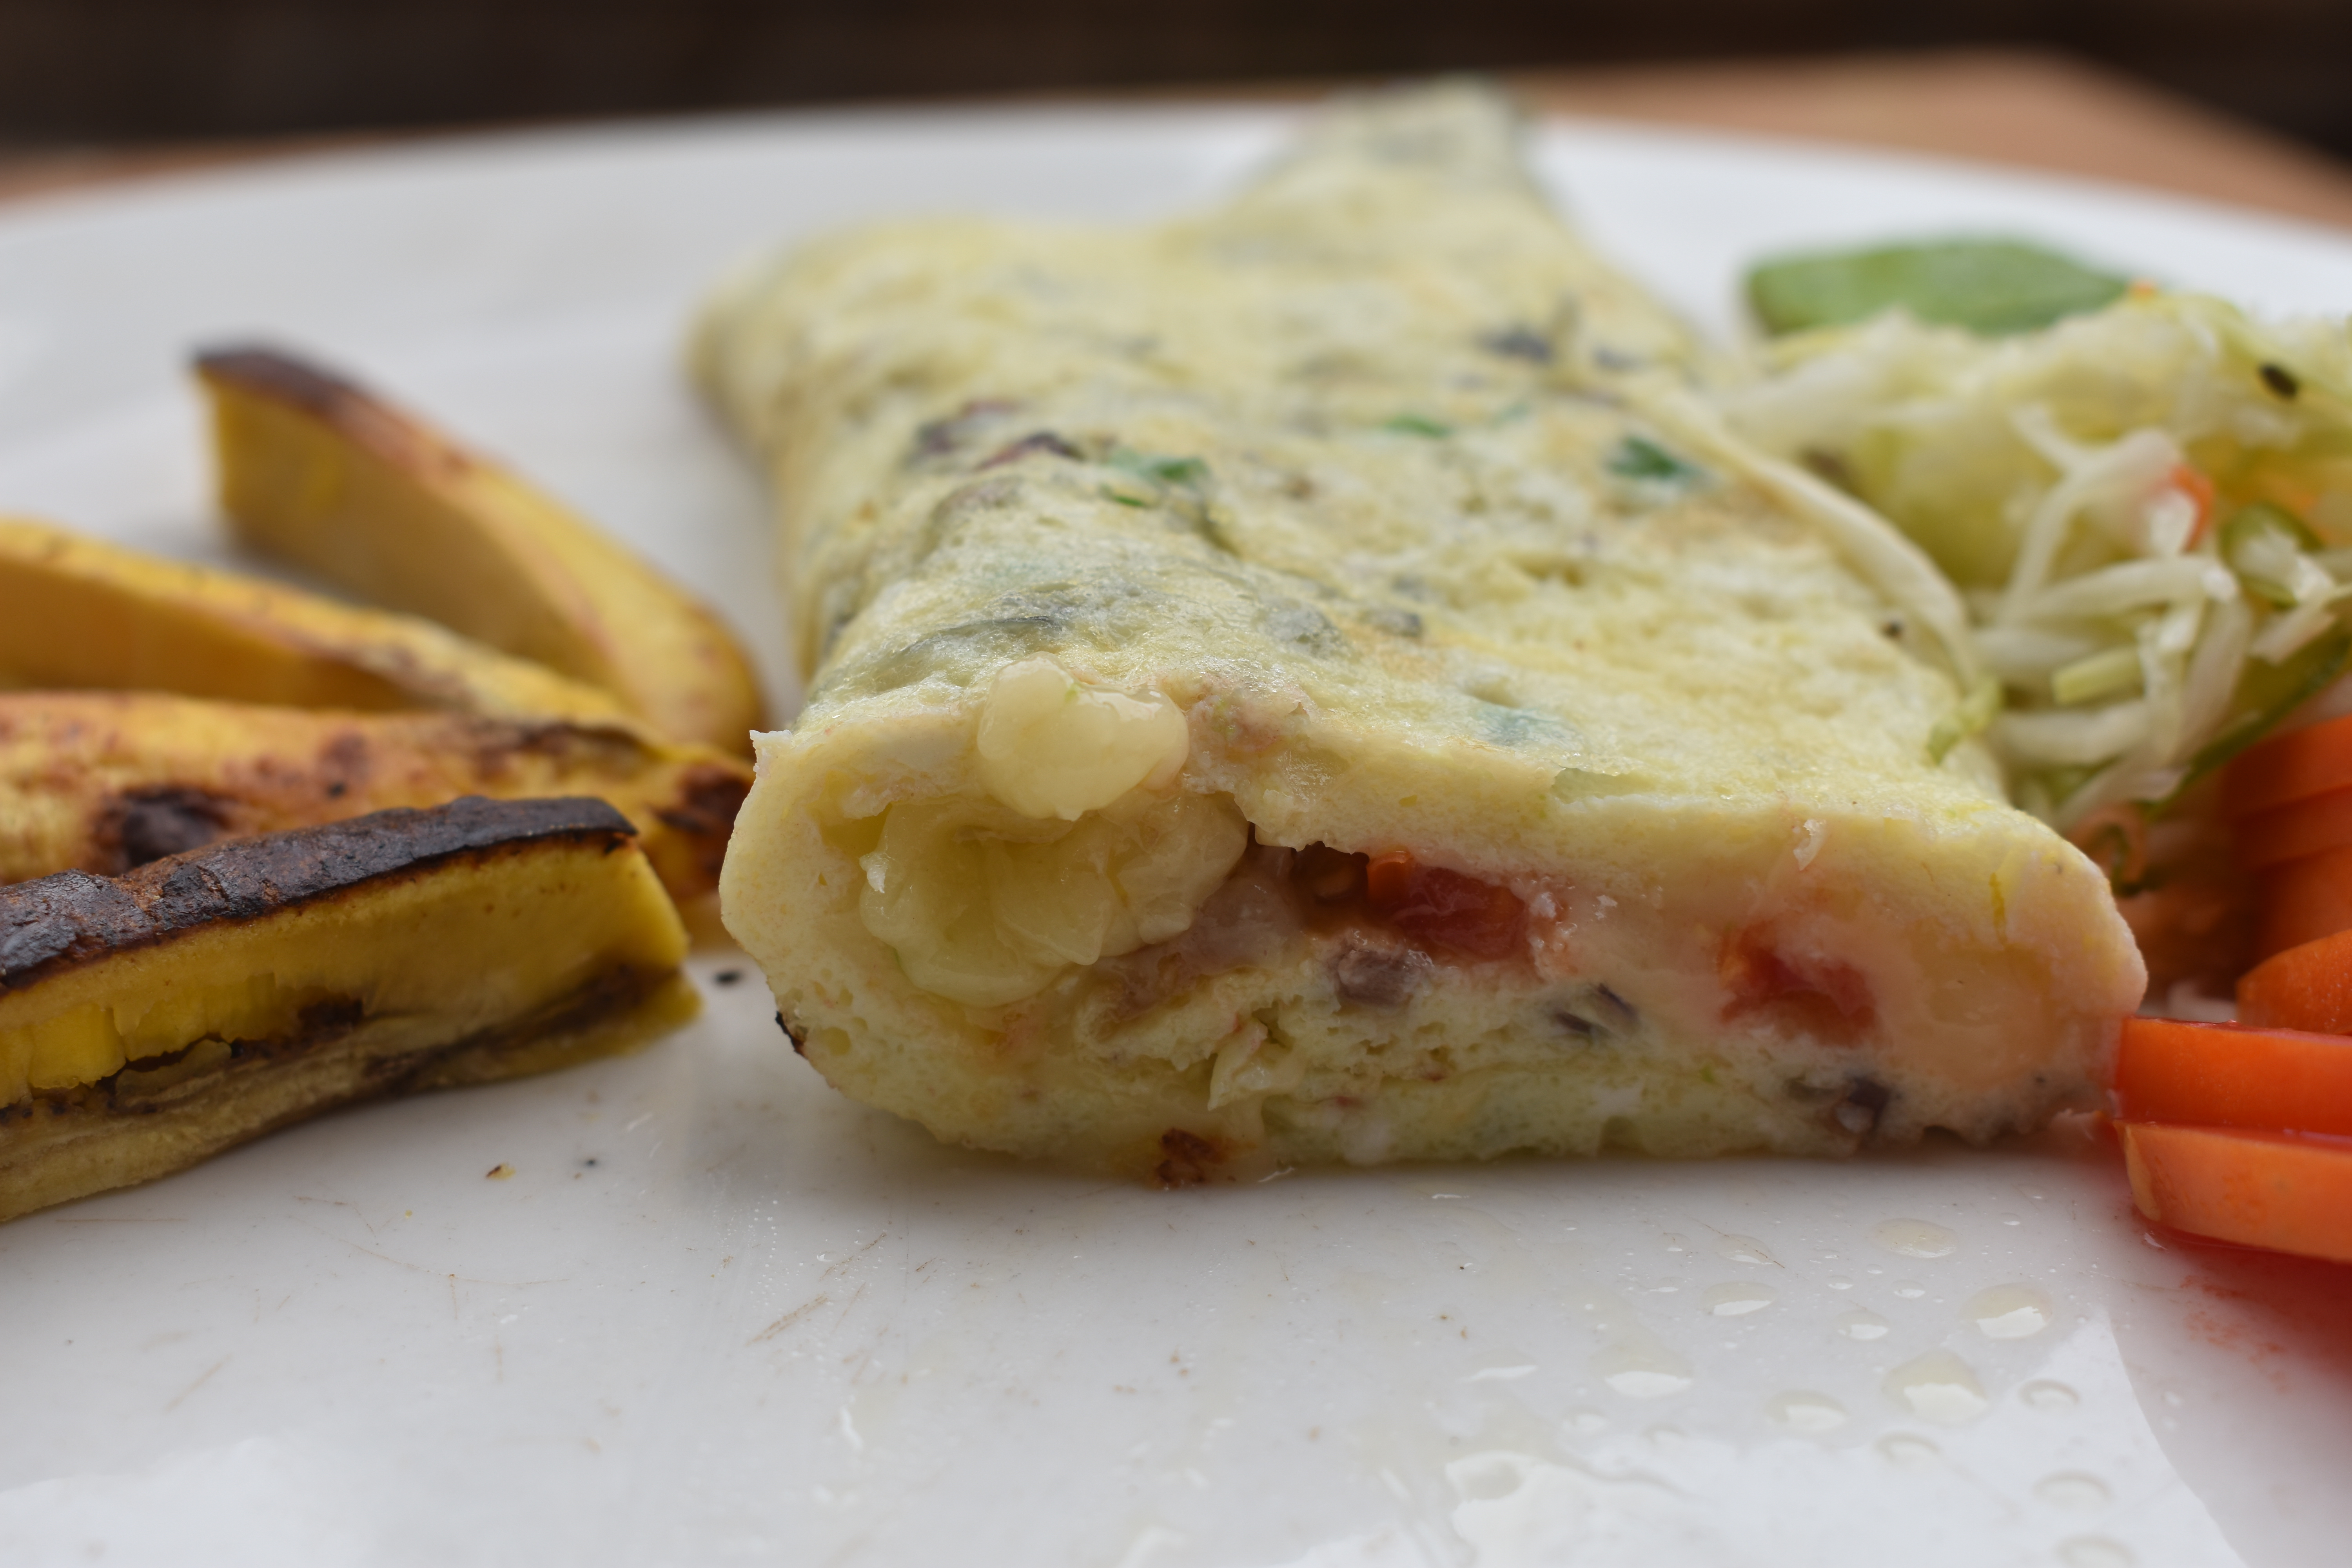 eggs with cheese and meat